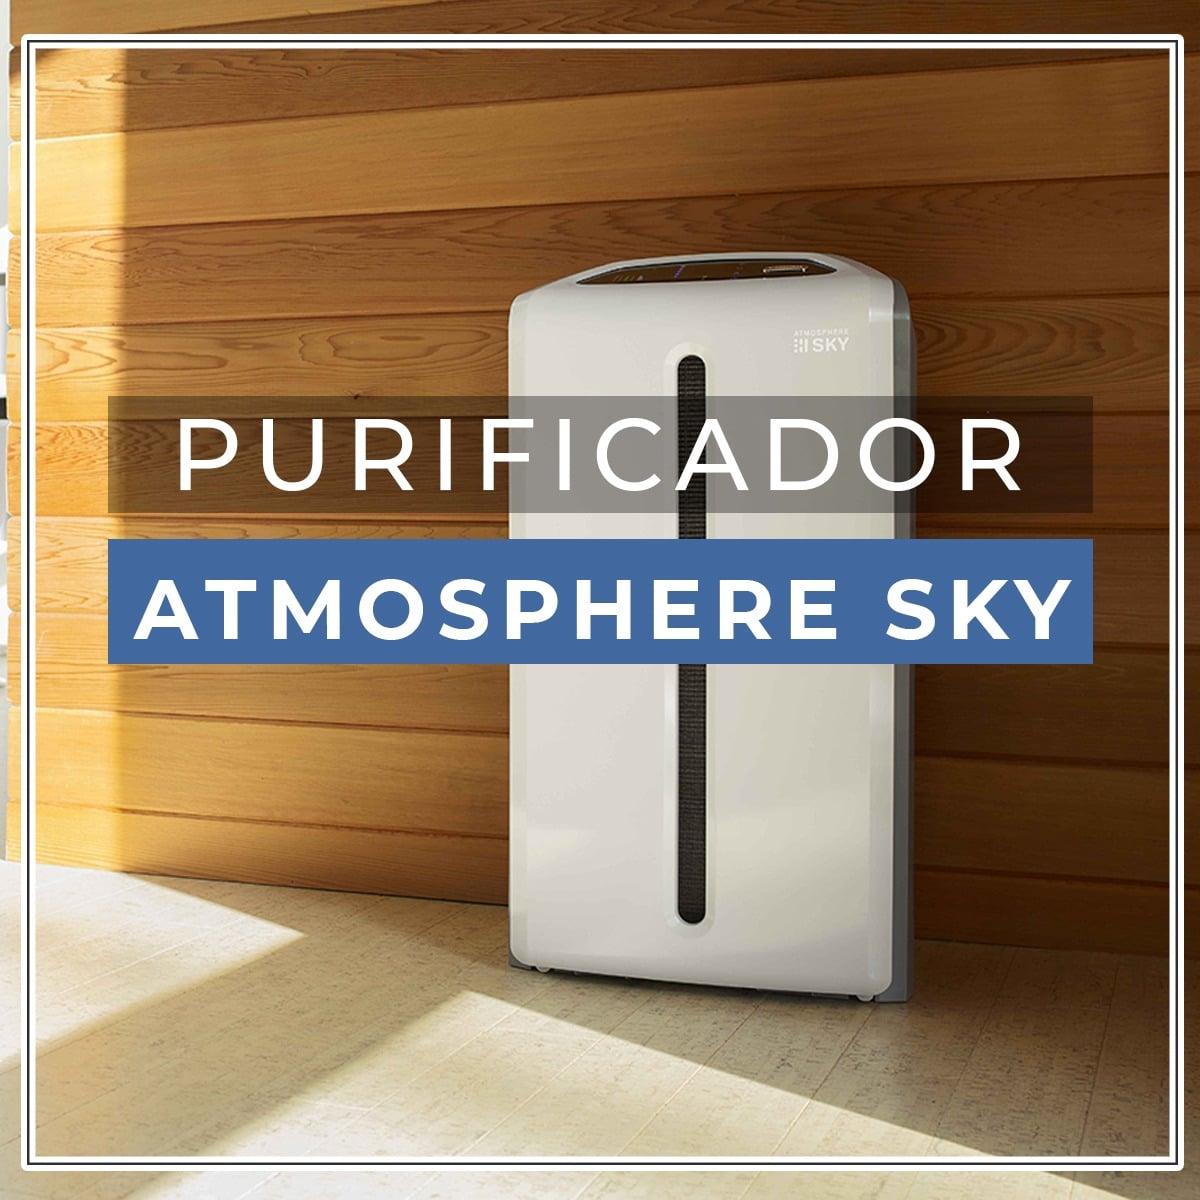 purificador atmosphere sky